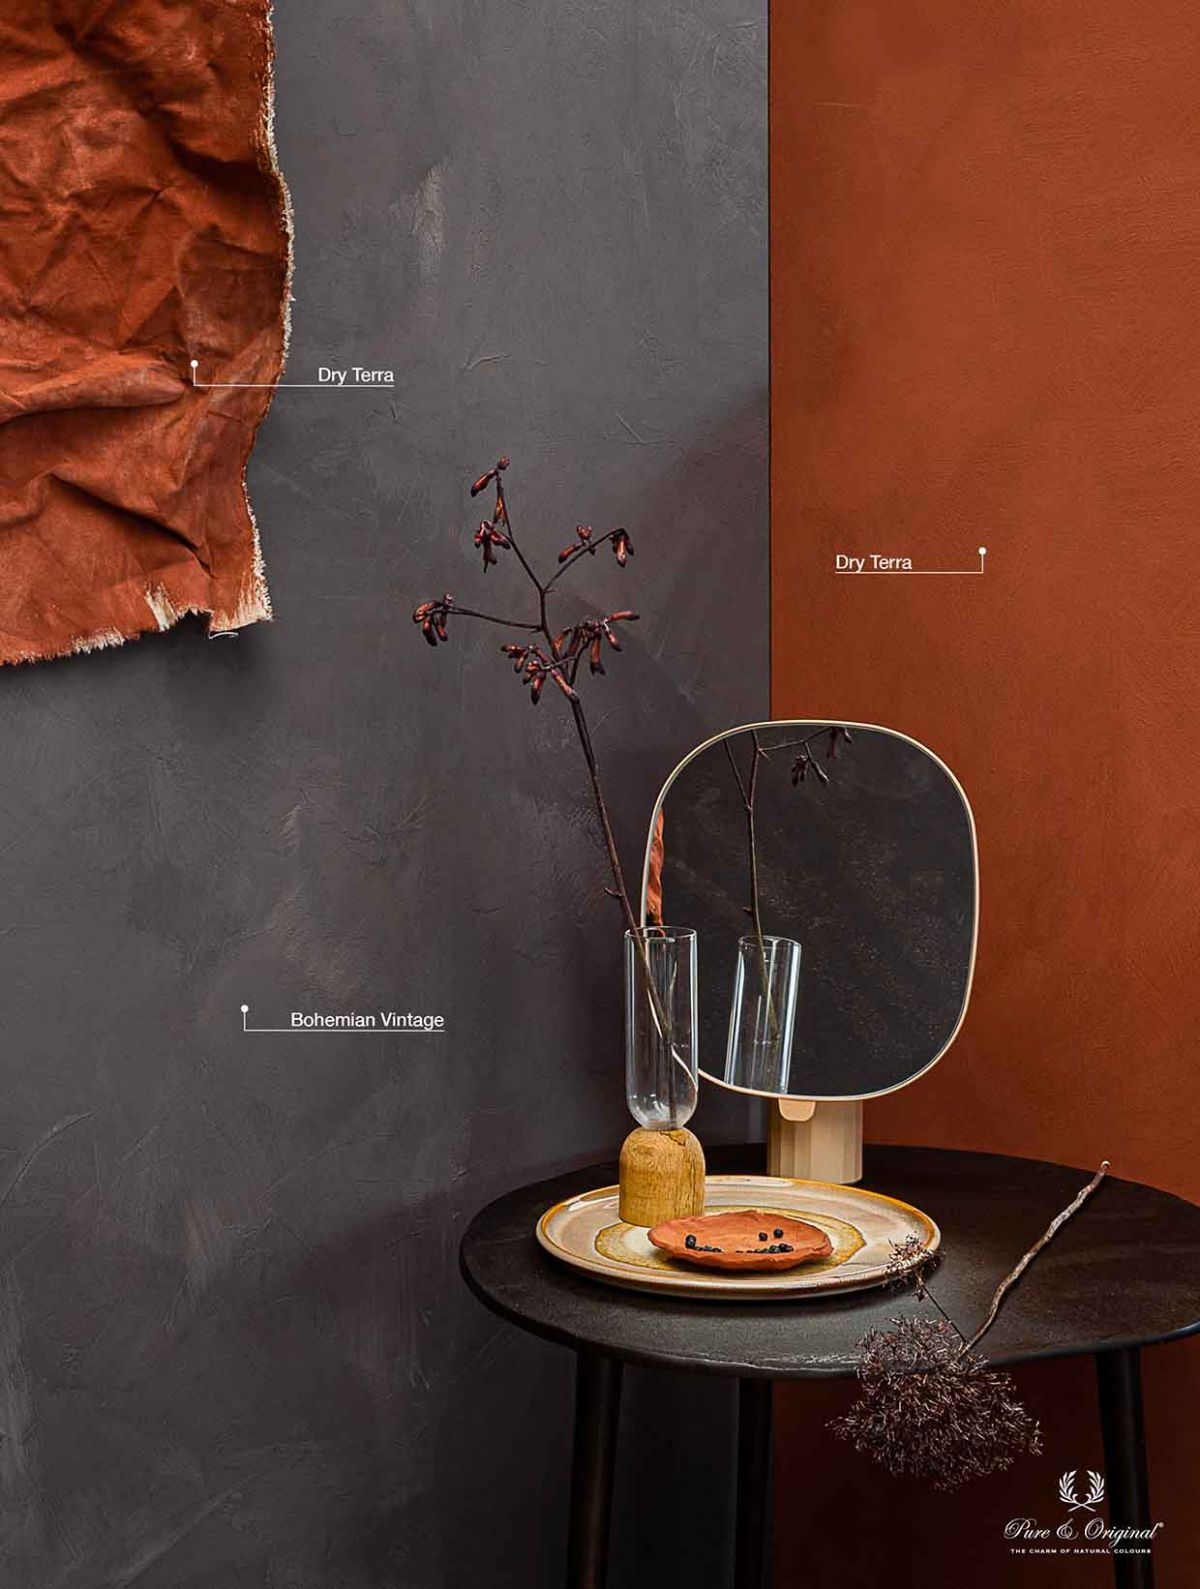 Bohemian Vintage, a warm purple-ish grey colour. Combined with warm terracotta Dry Terra